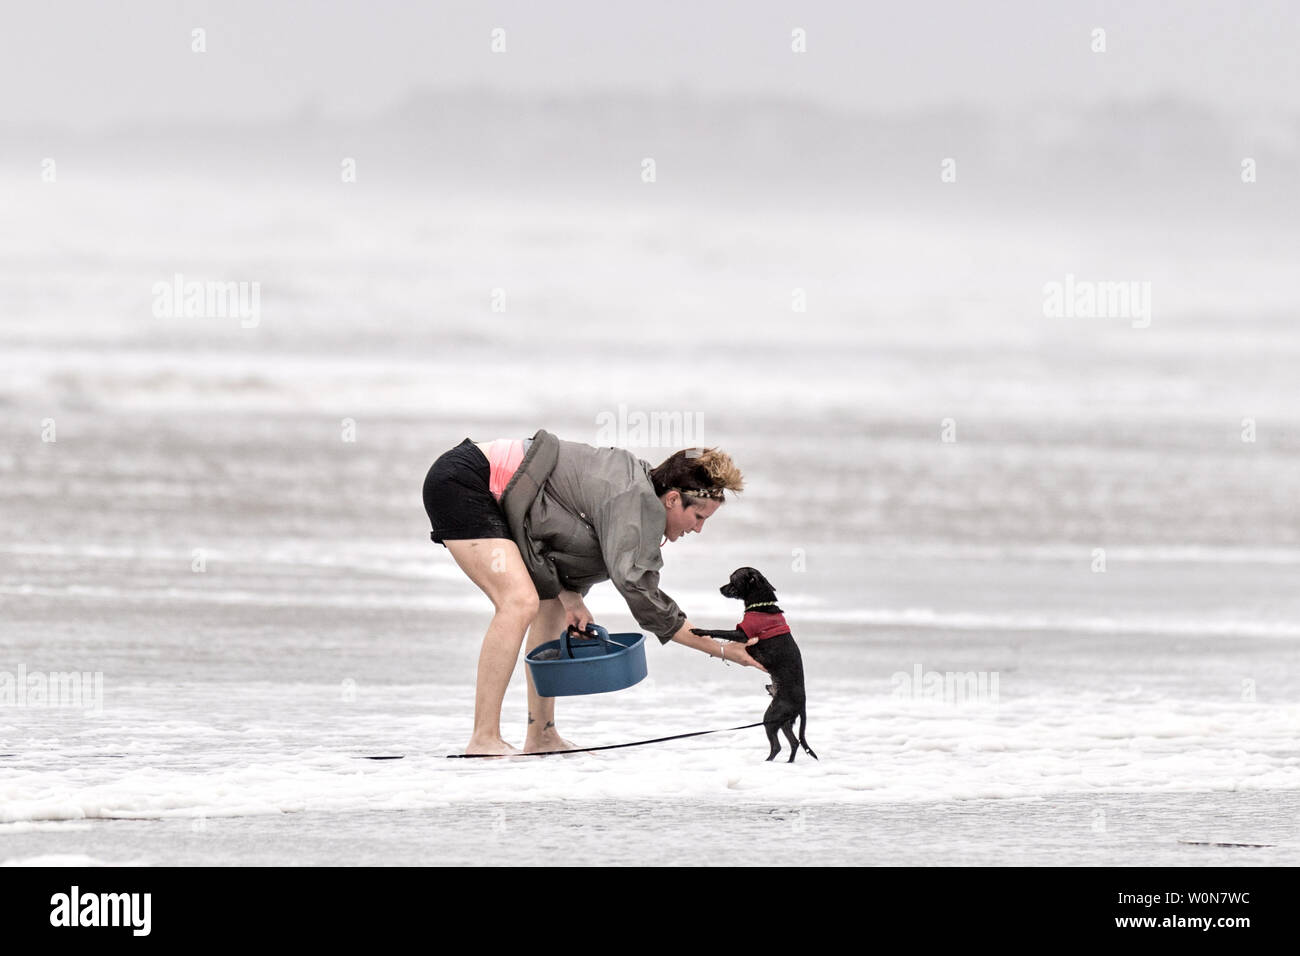 A woman picks up her small dog after tides surged along the beach in high winds from Tropical Storm Hermine in Isle of Palms, South Carolina, on September 2, 2016. Beach goers were discouraged from entering the water due to rip currents, turbulent waves and winds exceeding 50-mph.     Photo by Richard Ellis/UPI Stock Photo